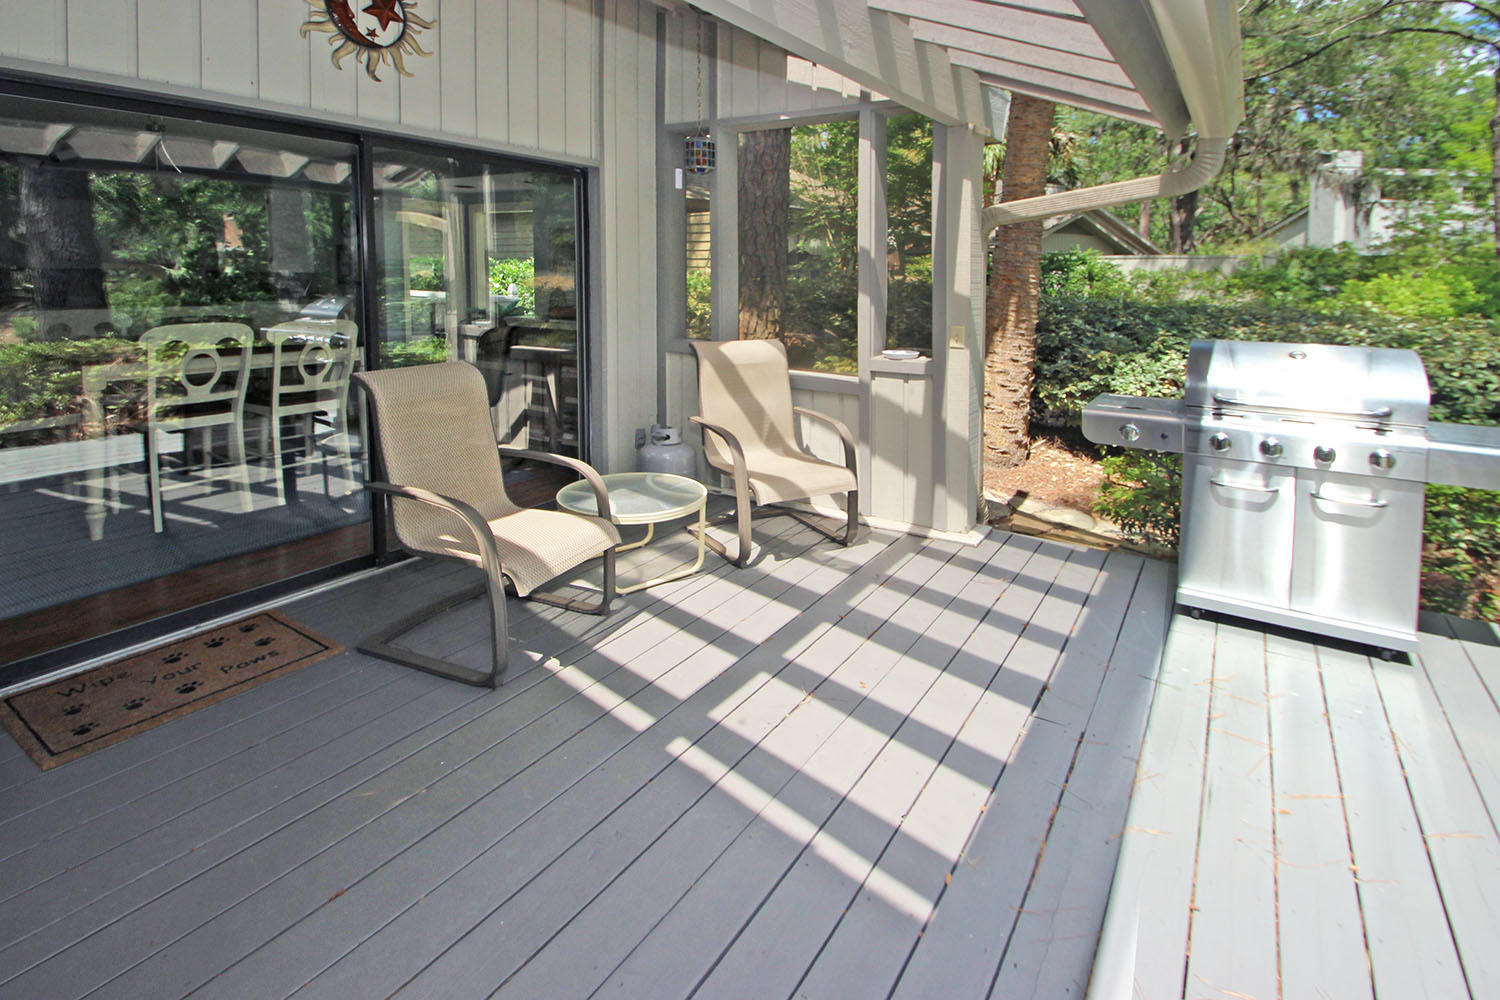 Back deck and grill area